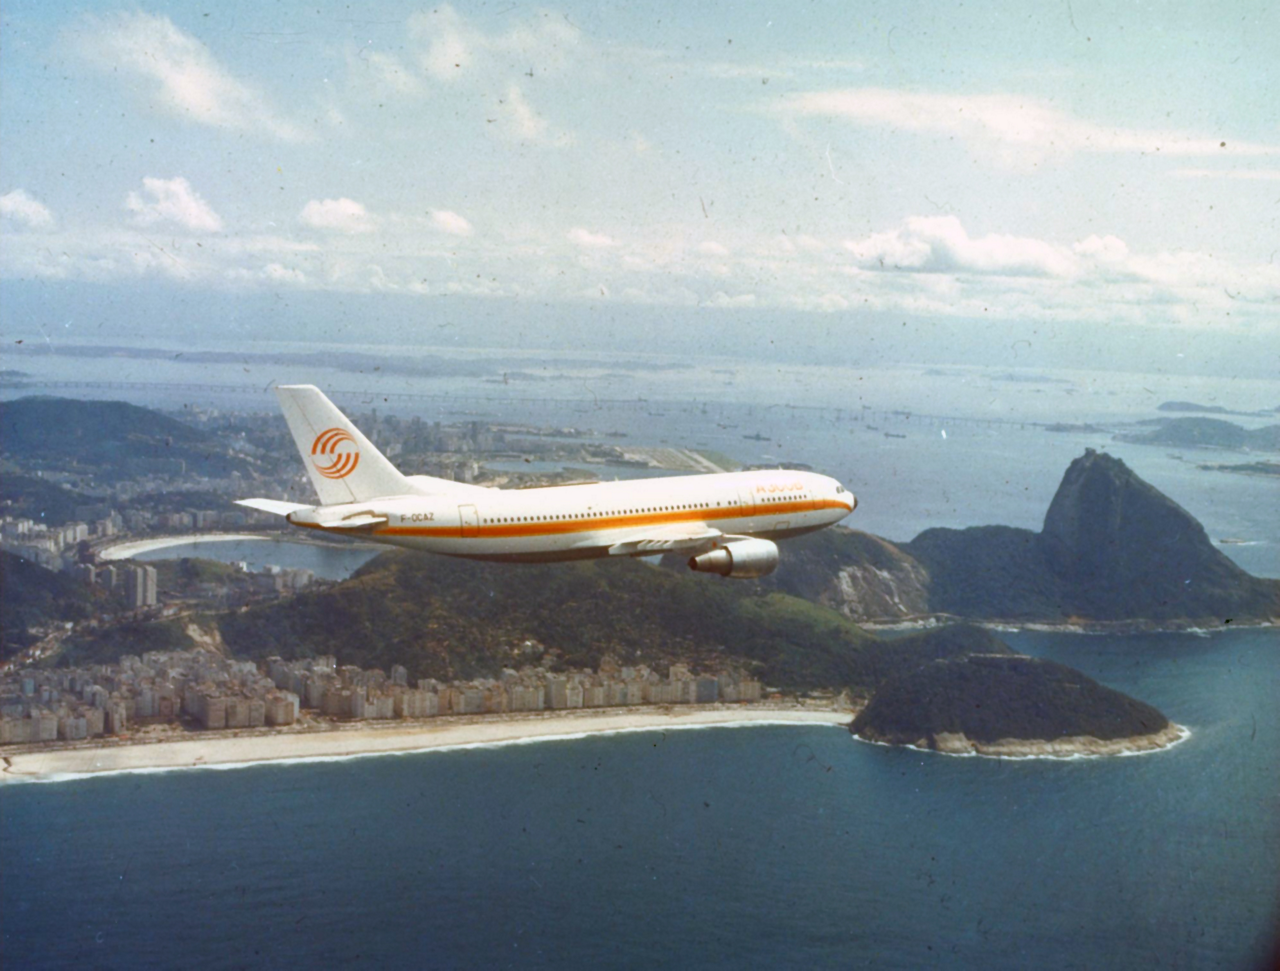 The Airbus A300 is shown in flight during this aircraft's 1973 tour across North and South America.